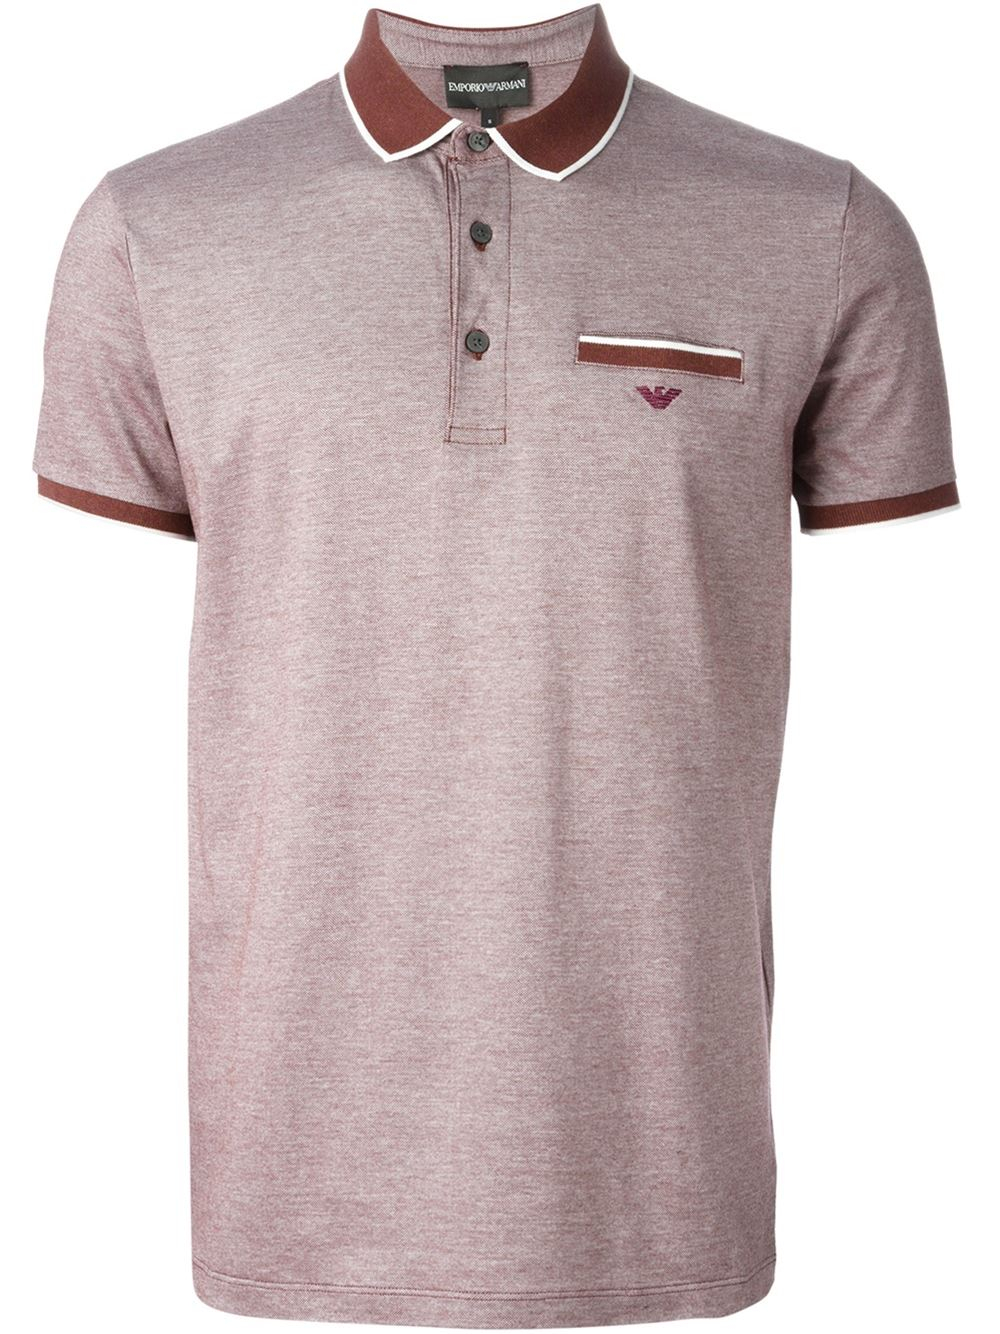 Emporio armani pocket polo shirt in red for men lyst for Two pocket polo shirt